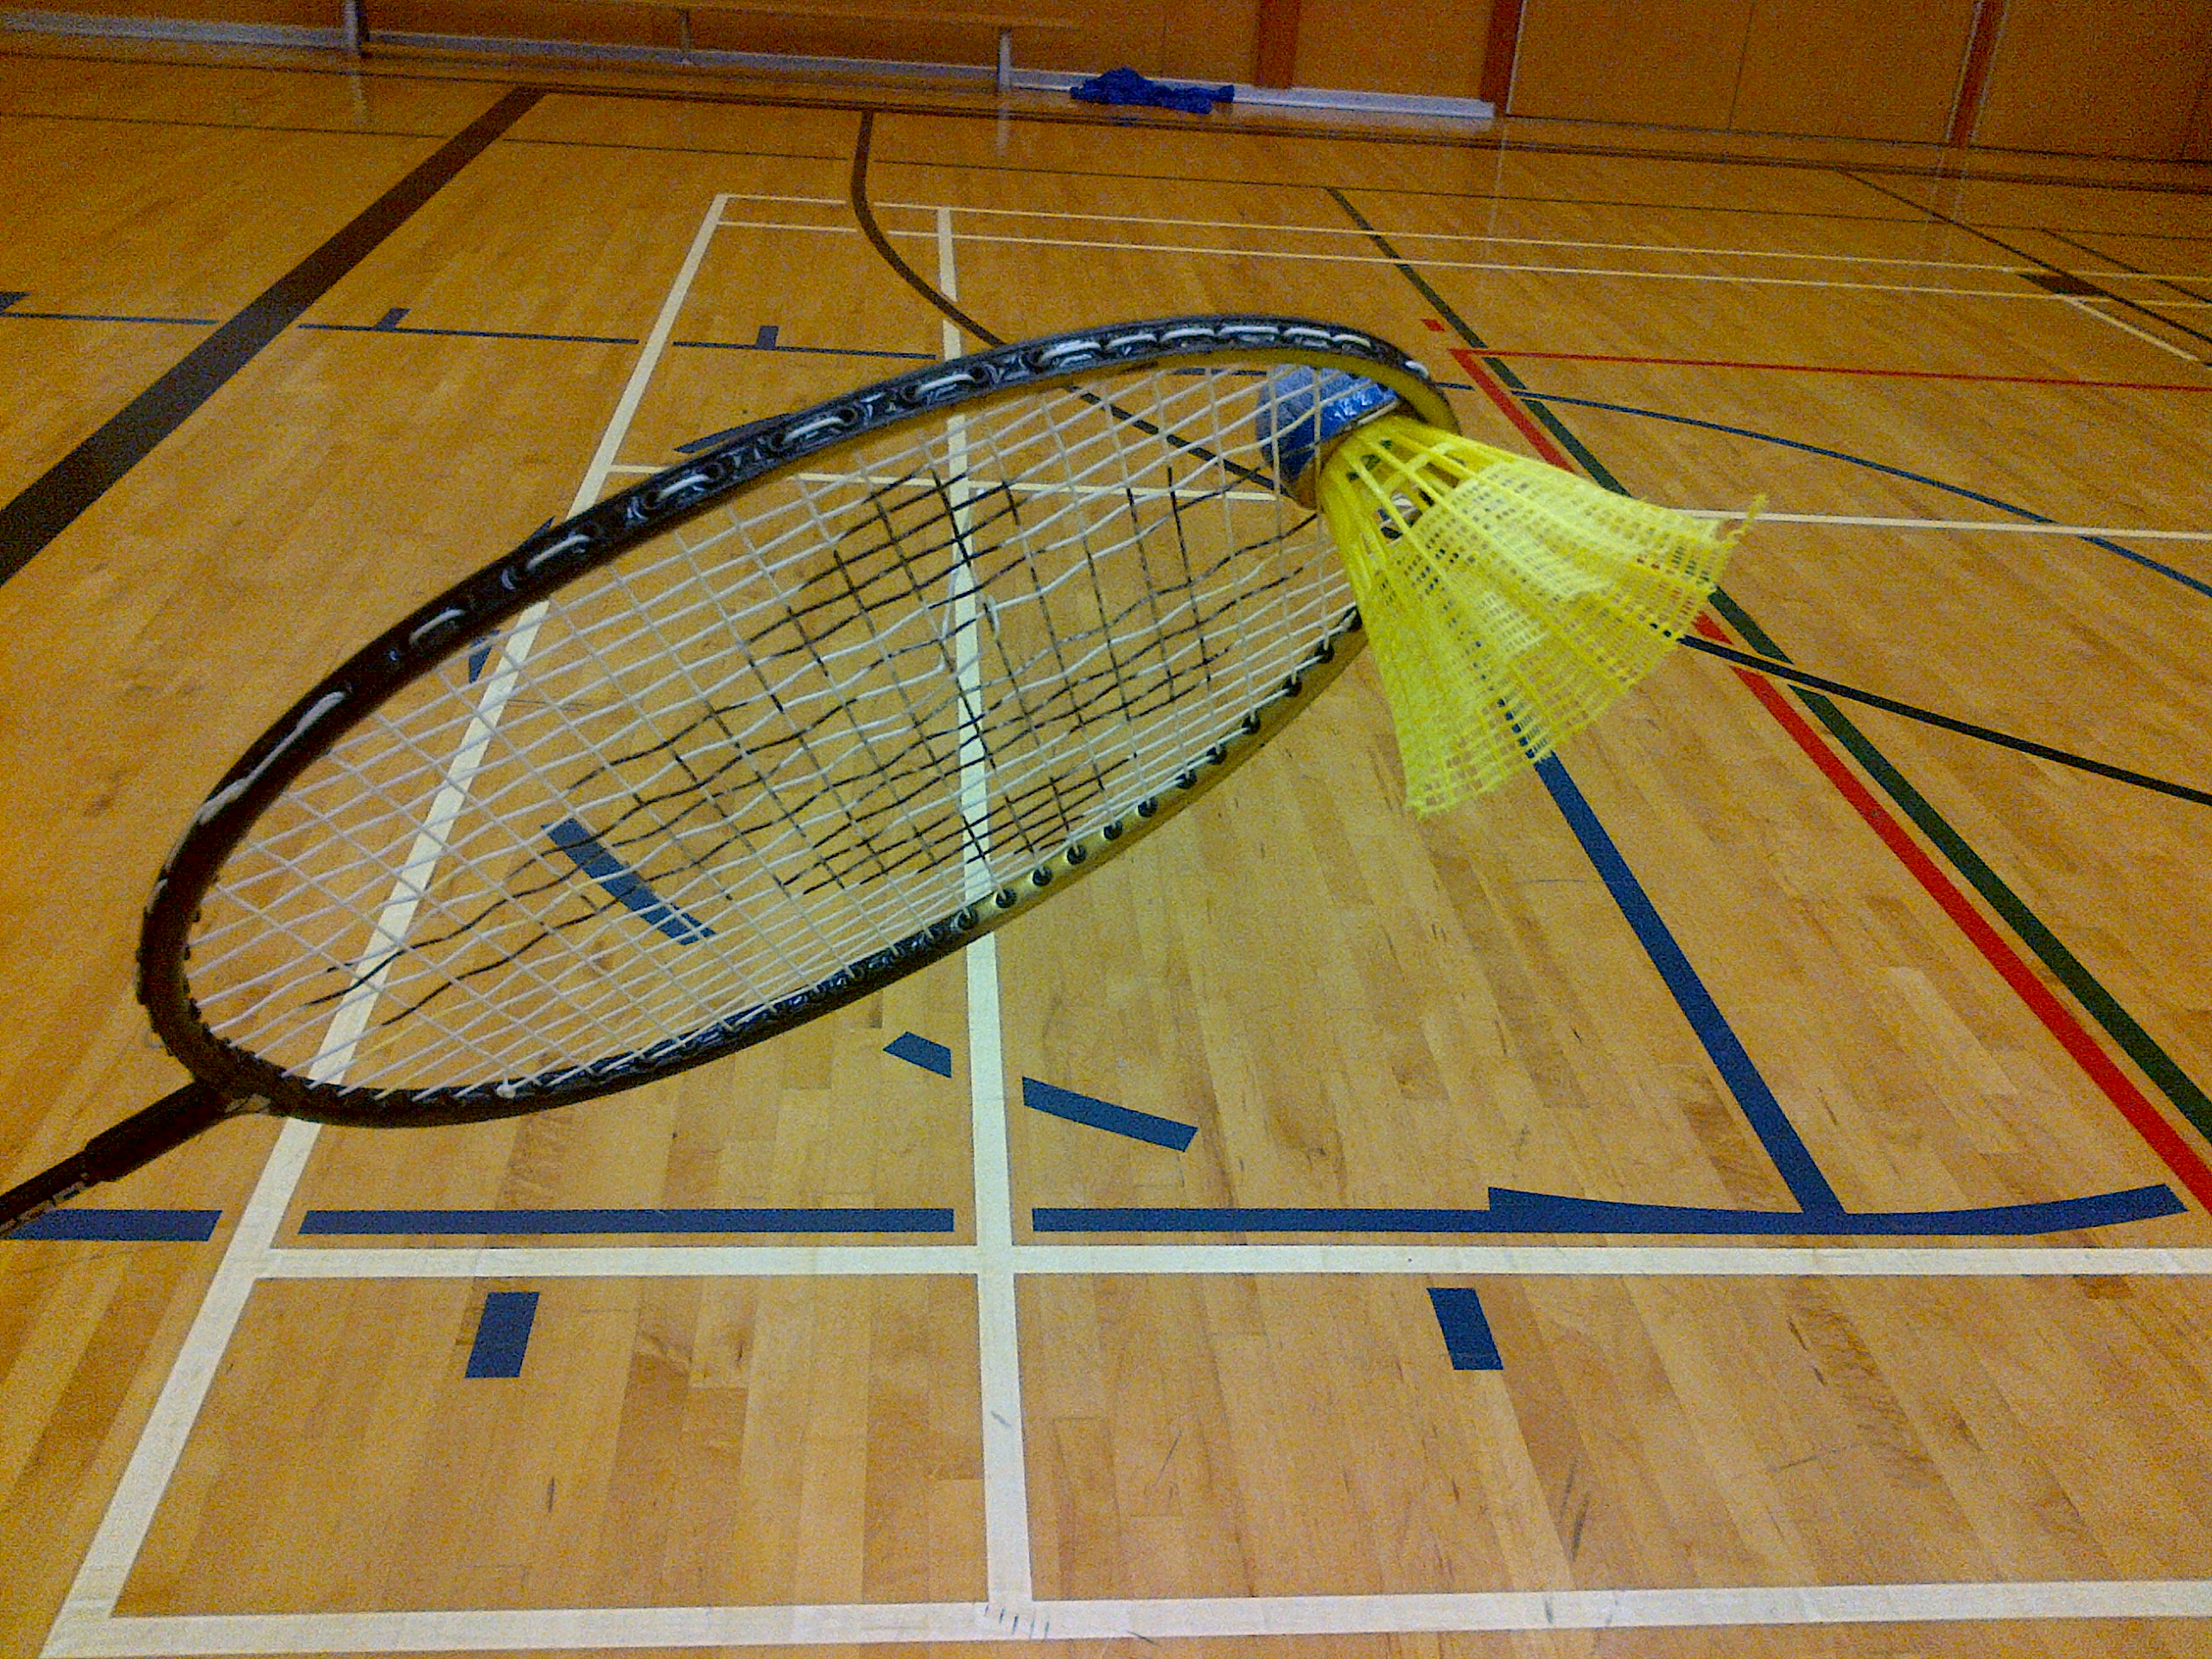 Coaching - Court 3 @ Cordova Bay Community Club | Victoria | British Columbia | Canada